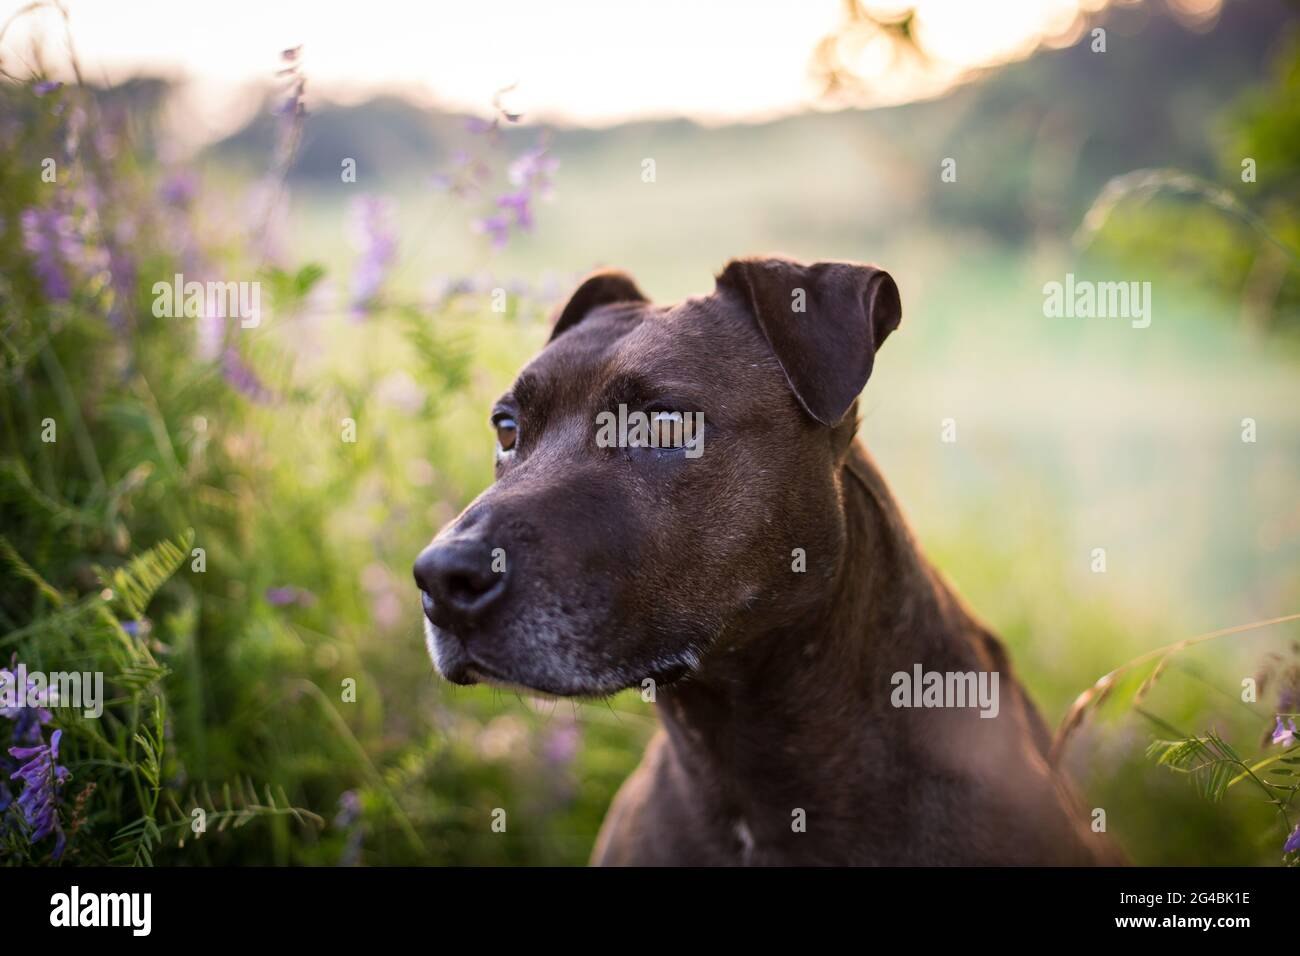 Mixbred dog in the evening sun Stock Photo